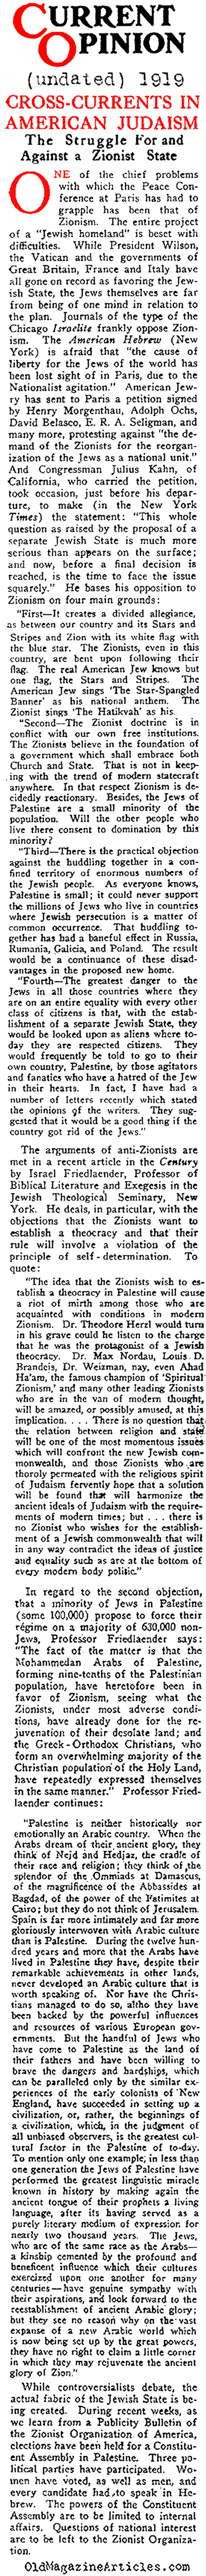 Arguments For and Against a Jewish State (Current Opinion, 1919)